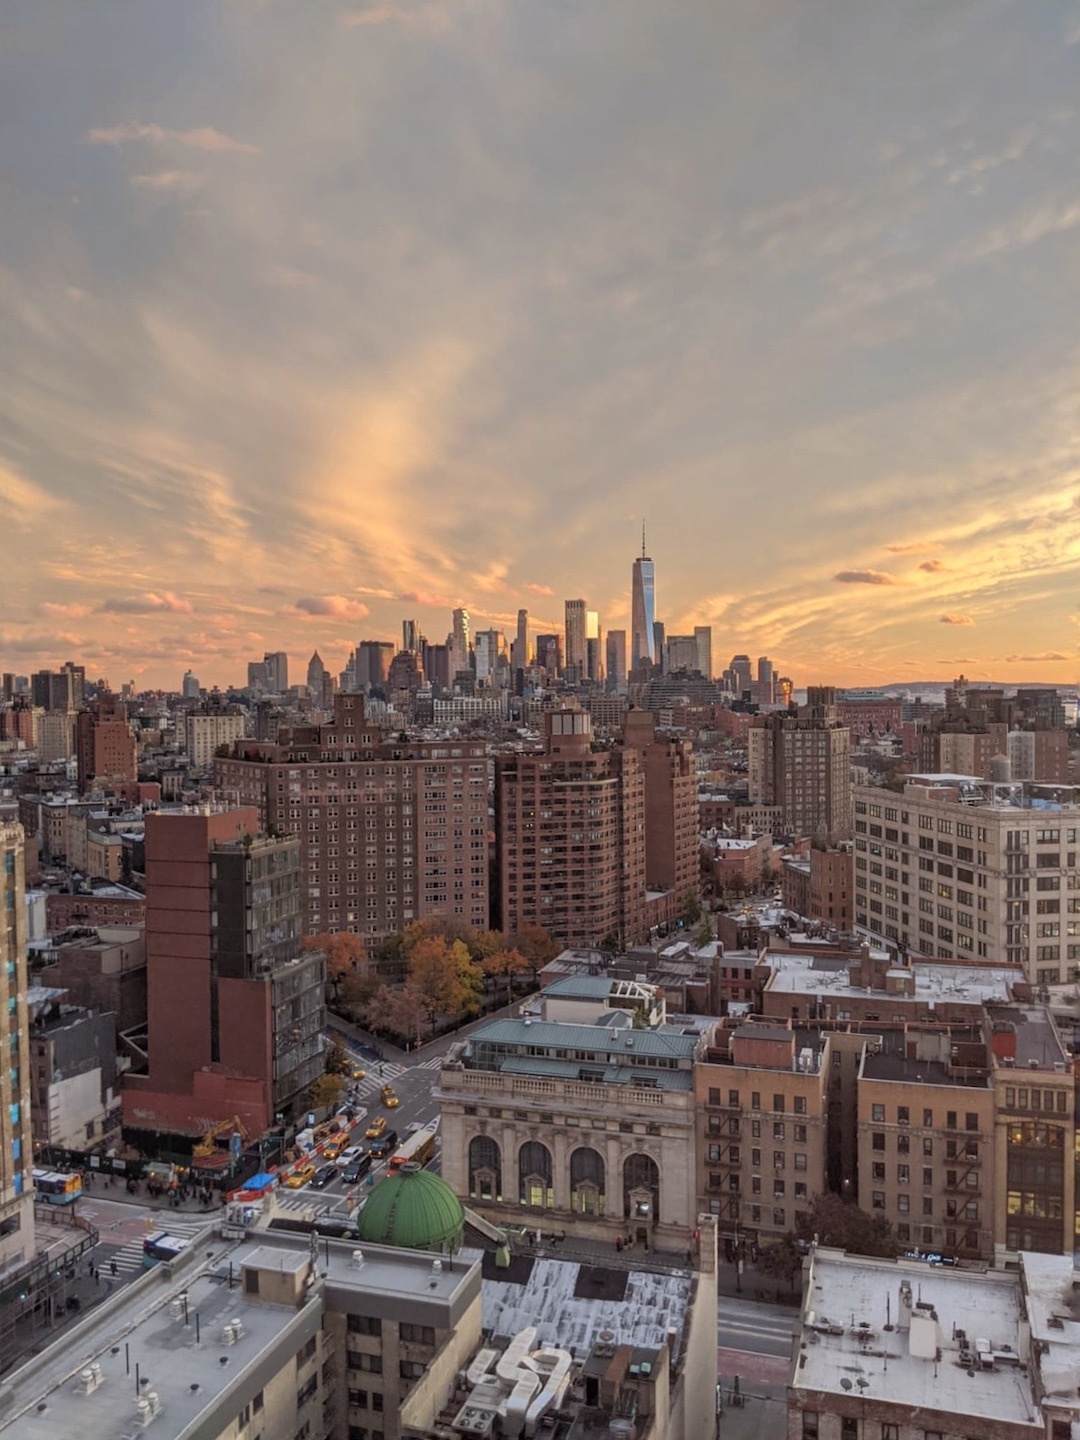 Her_Travel_Edit_NYC_Rooftop_Views